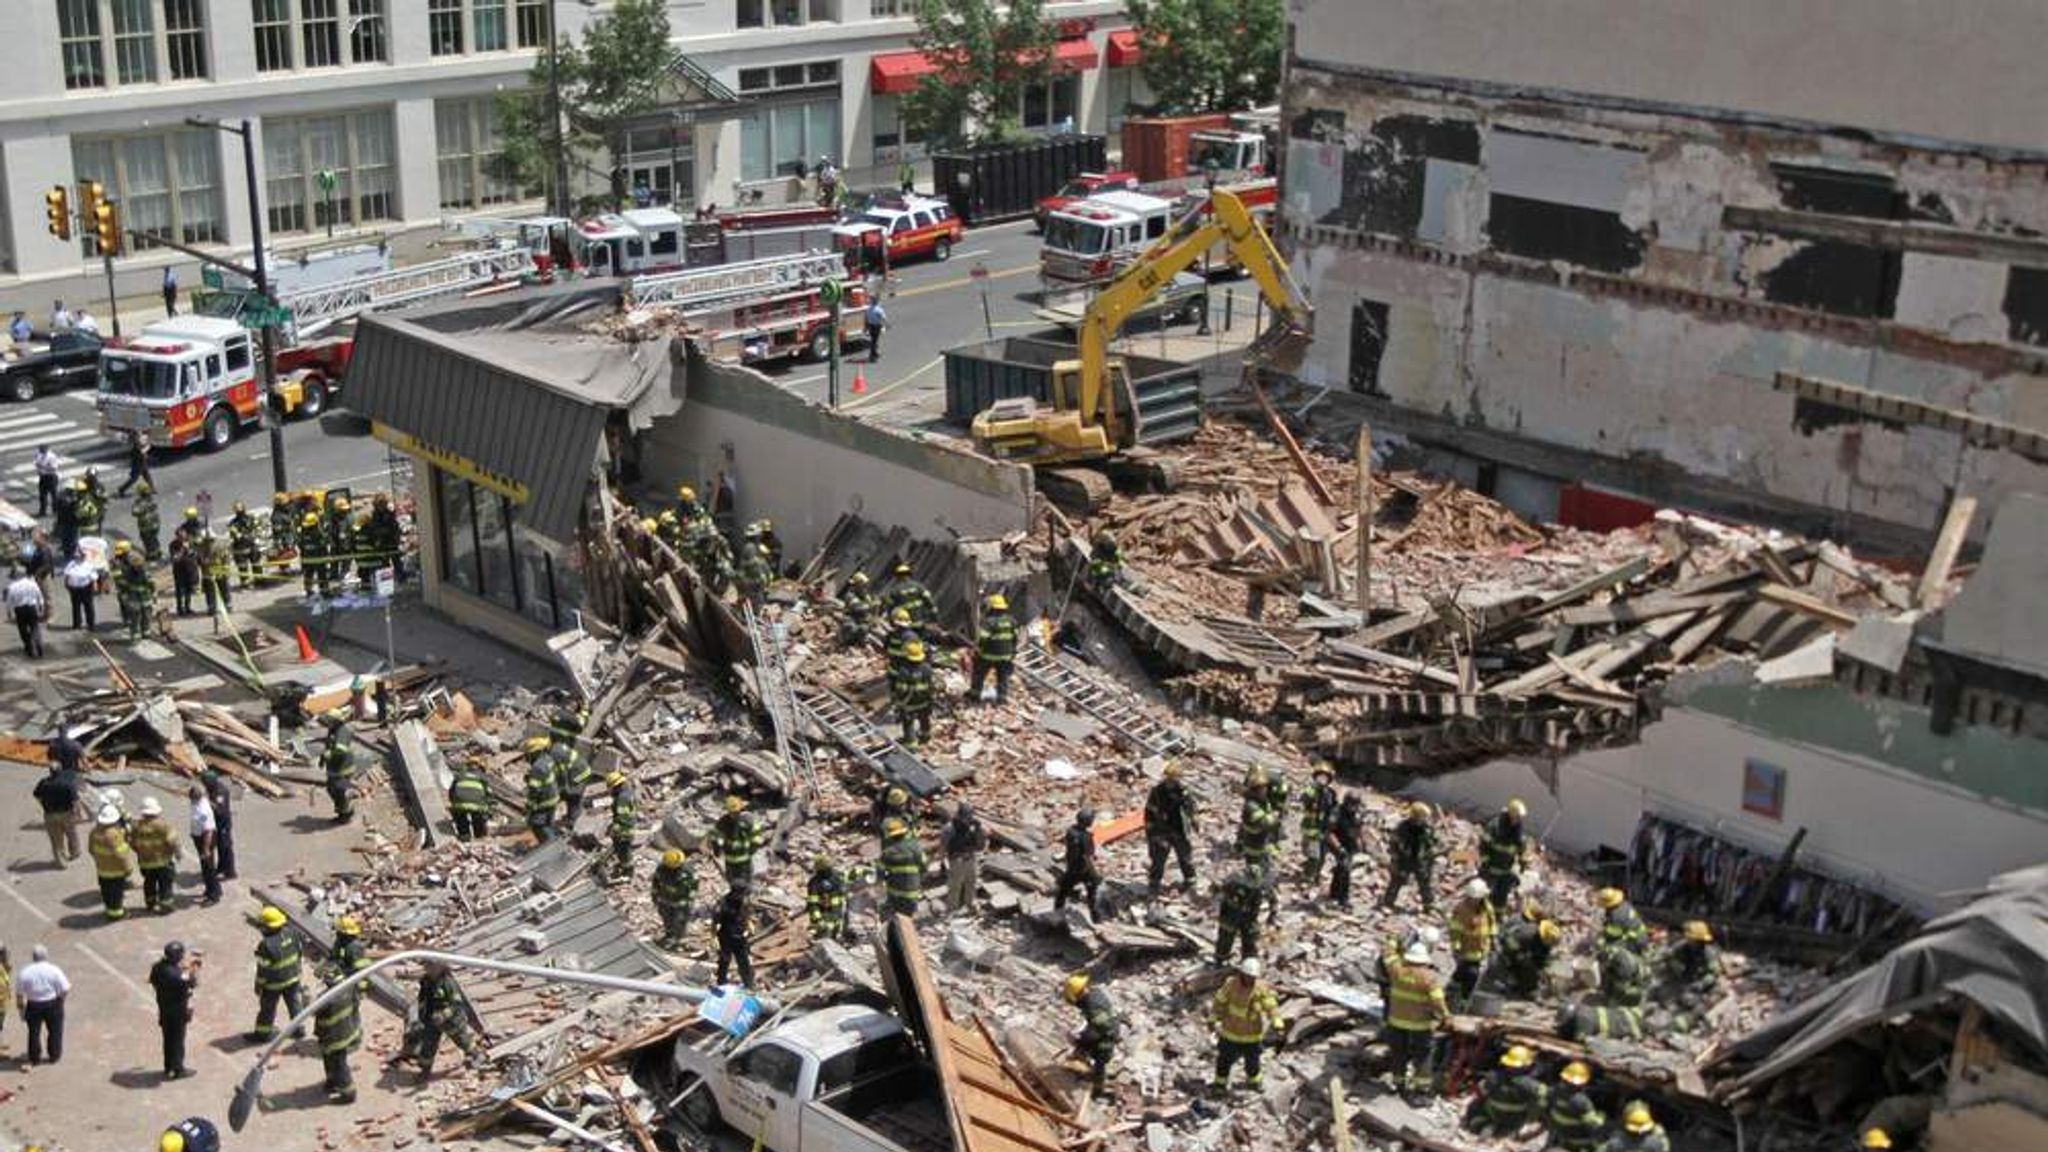 the causes of building collapse